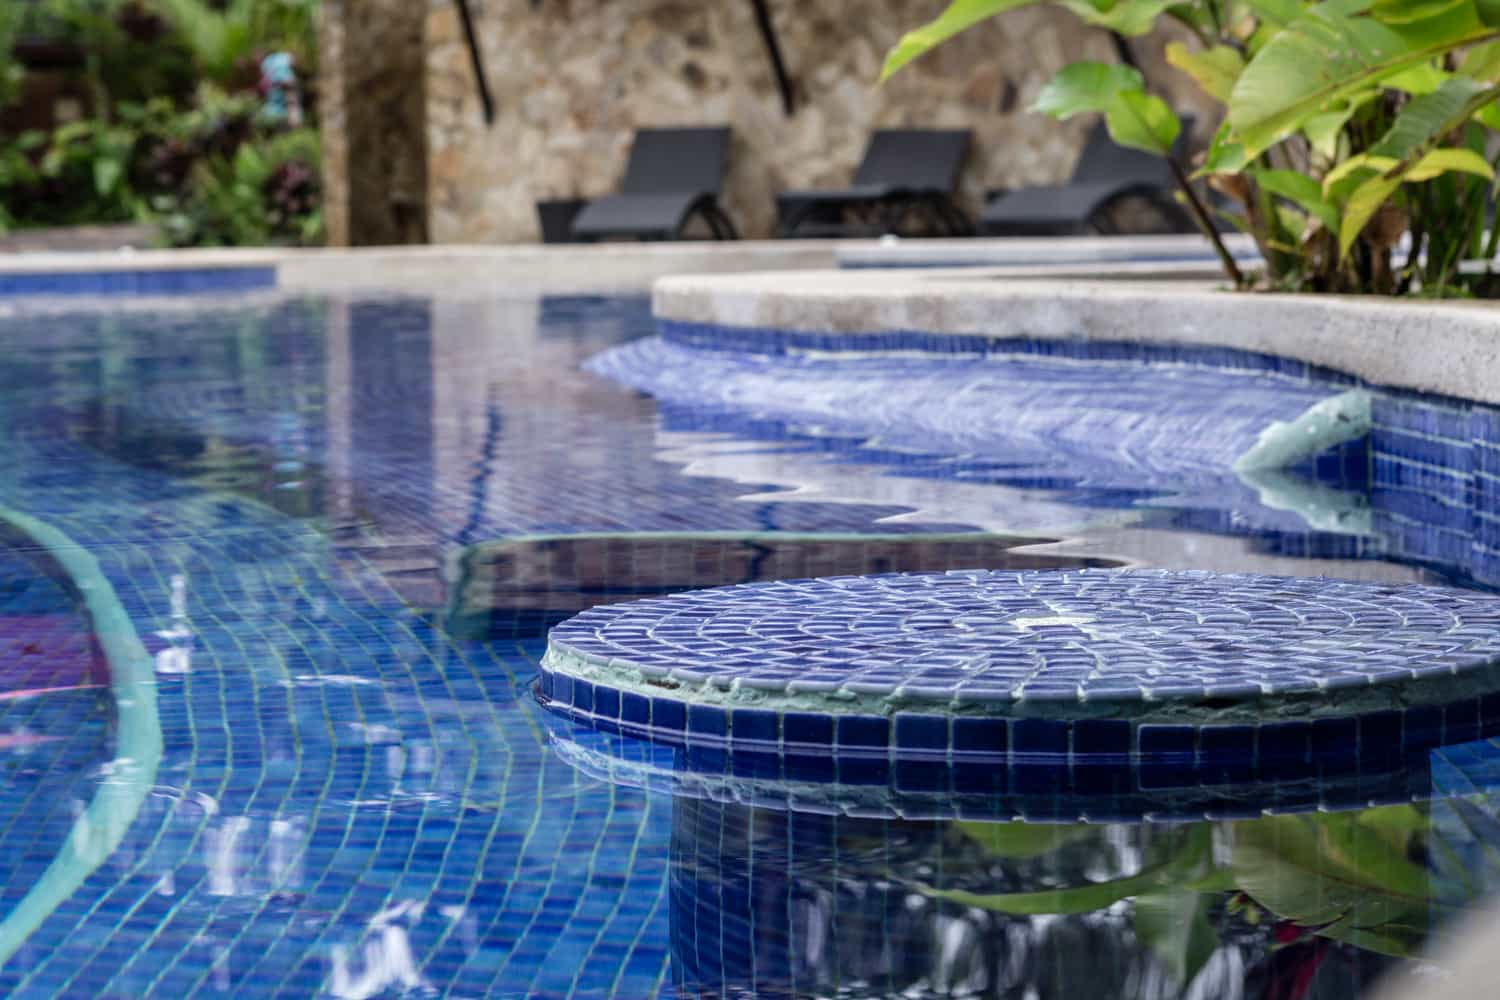 Bar stool in pool to enjoy drinks while enjoying the views at Rio Celeste Hideaway Hotel.